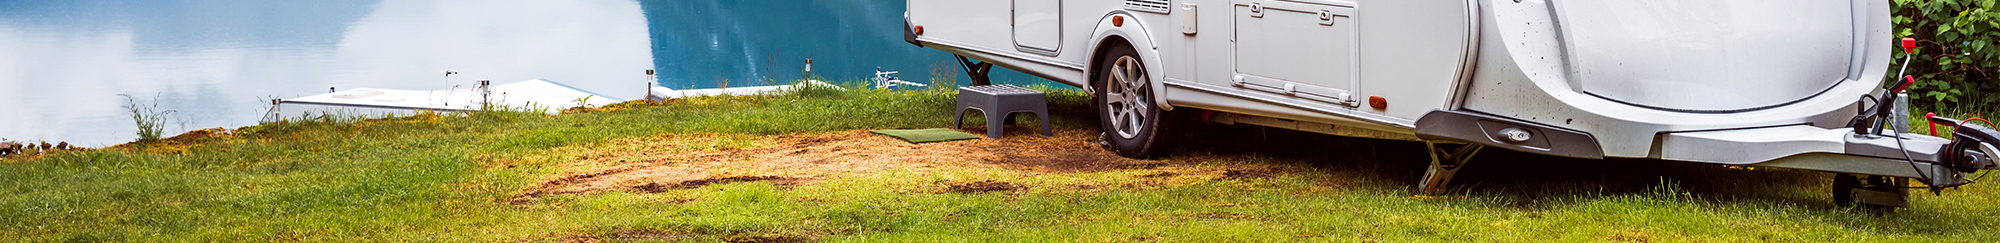 pop up camper crank handles lift system